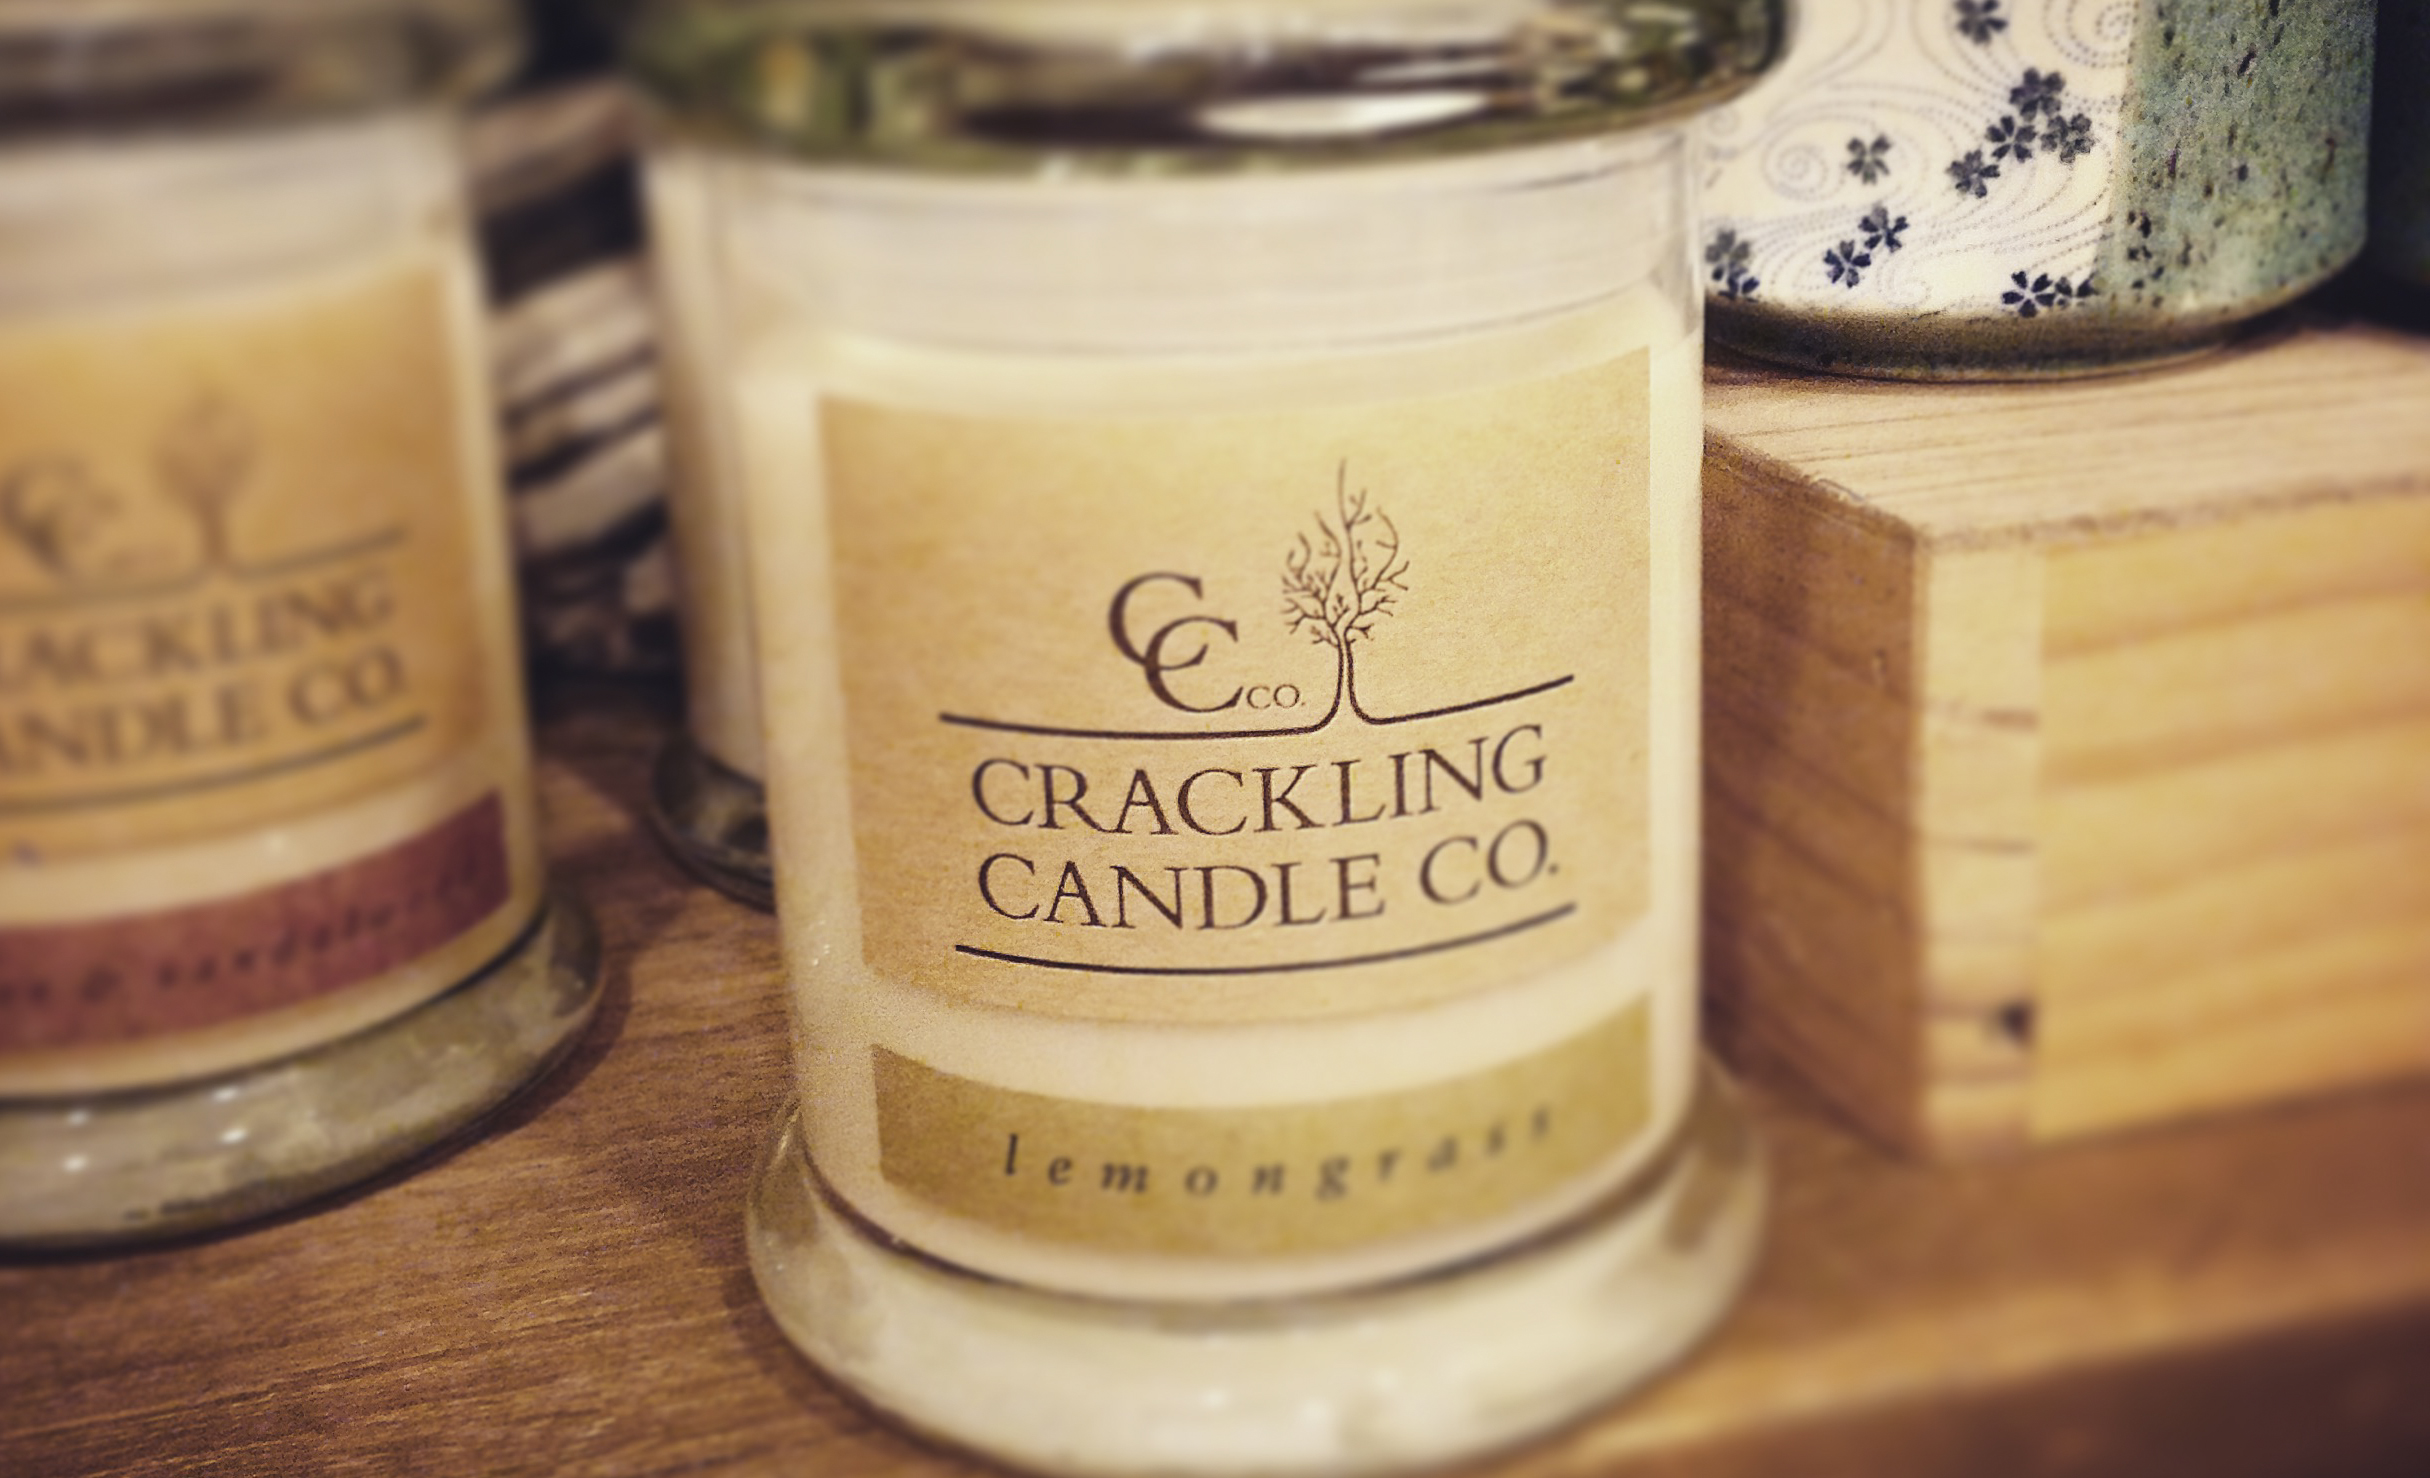 Crackling Candle Co.